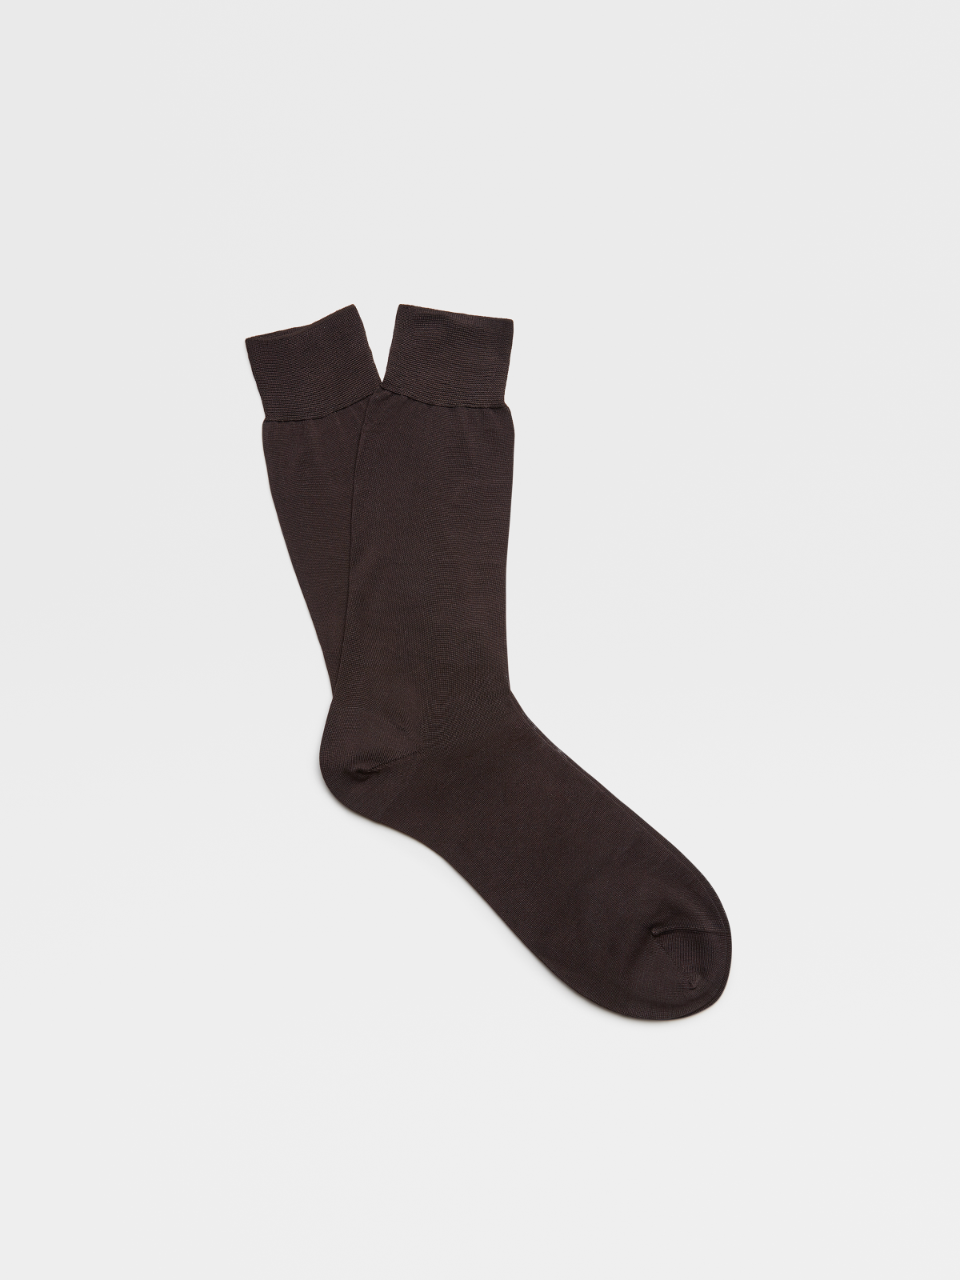 Plain Brown Cotton Mid Calf Socks